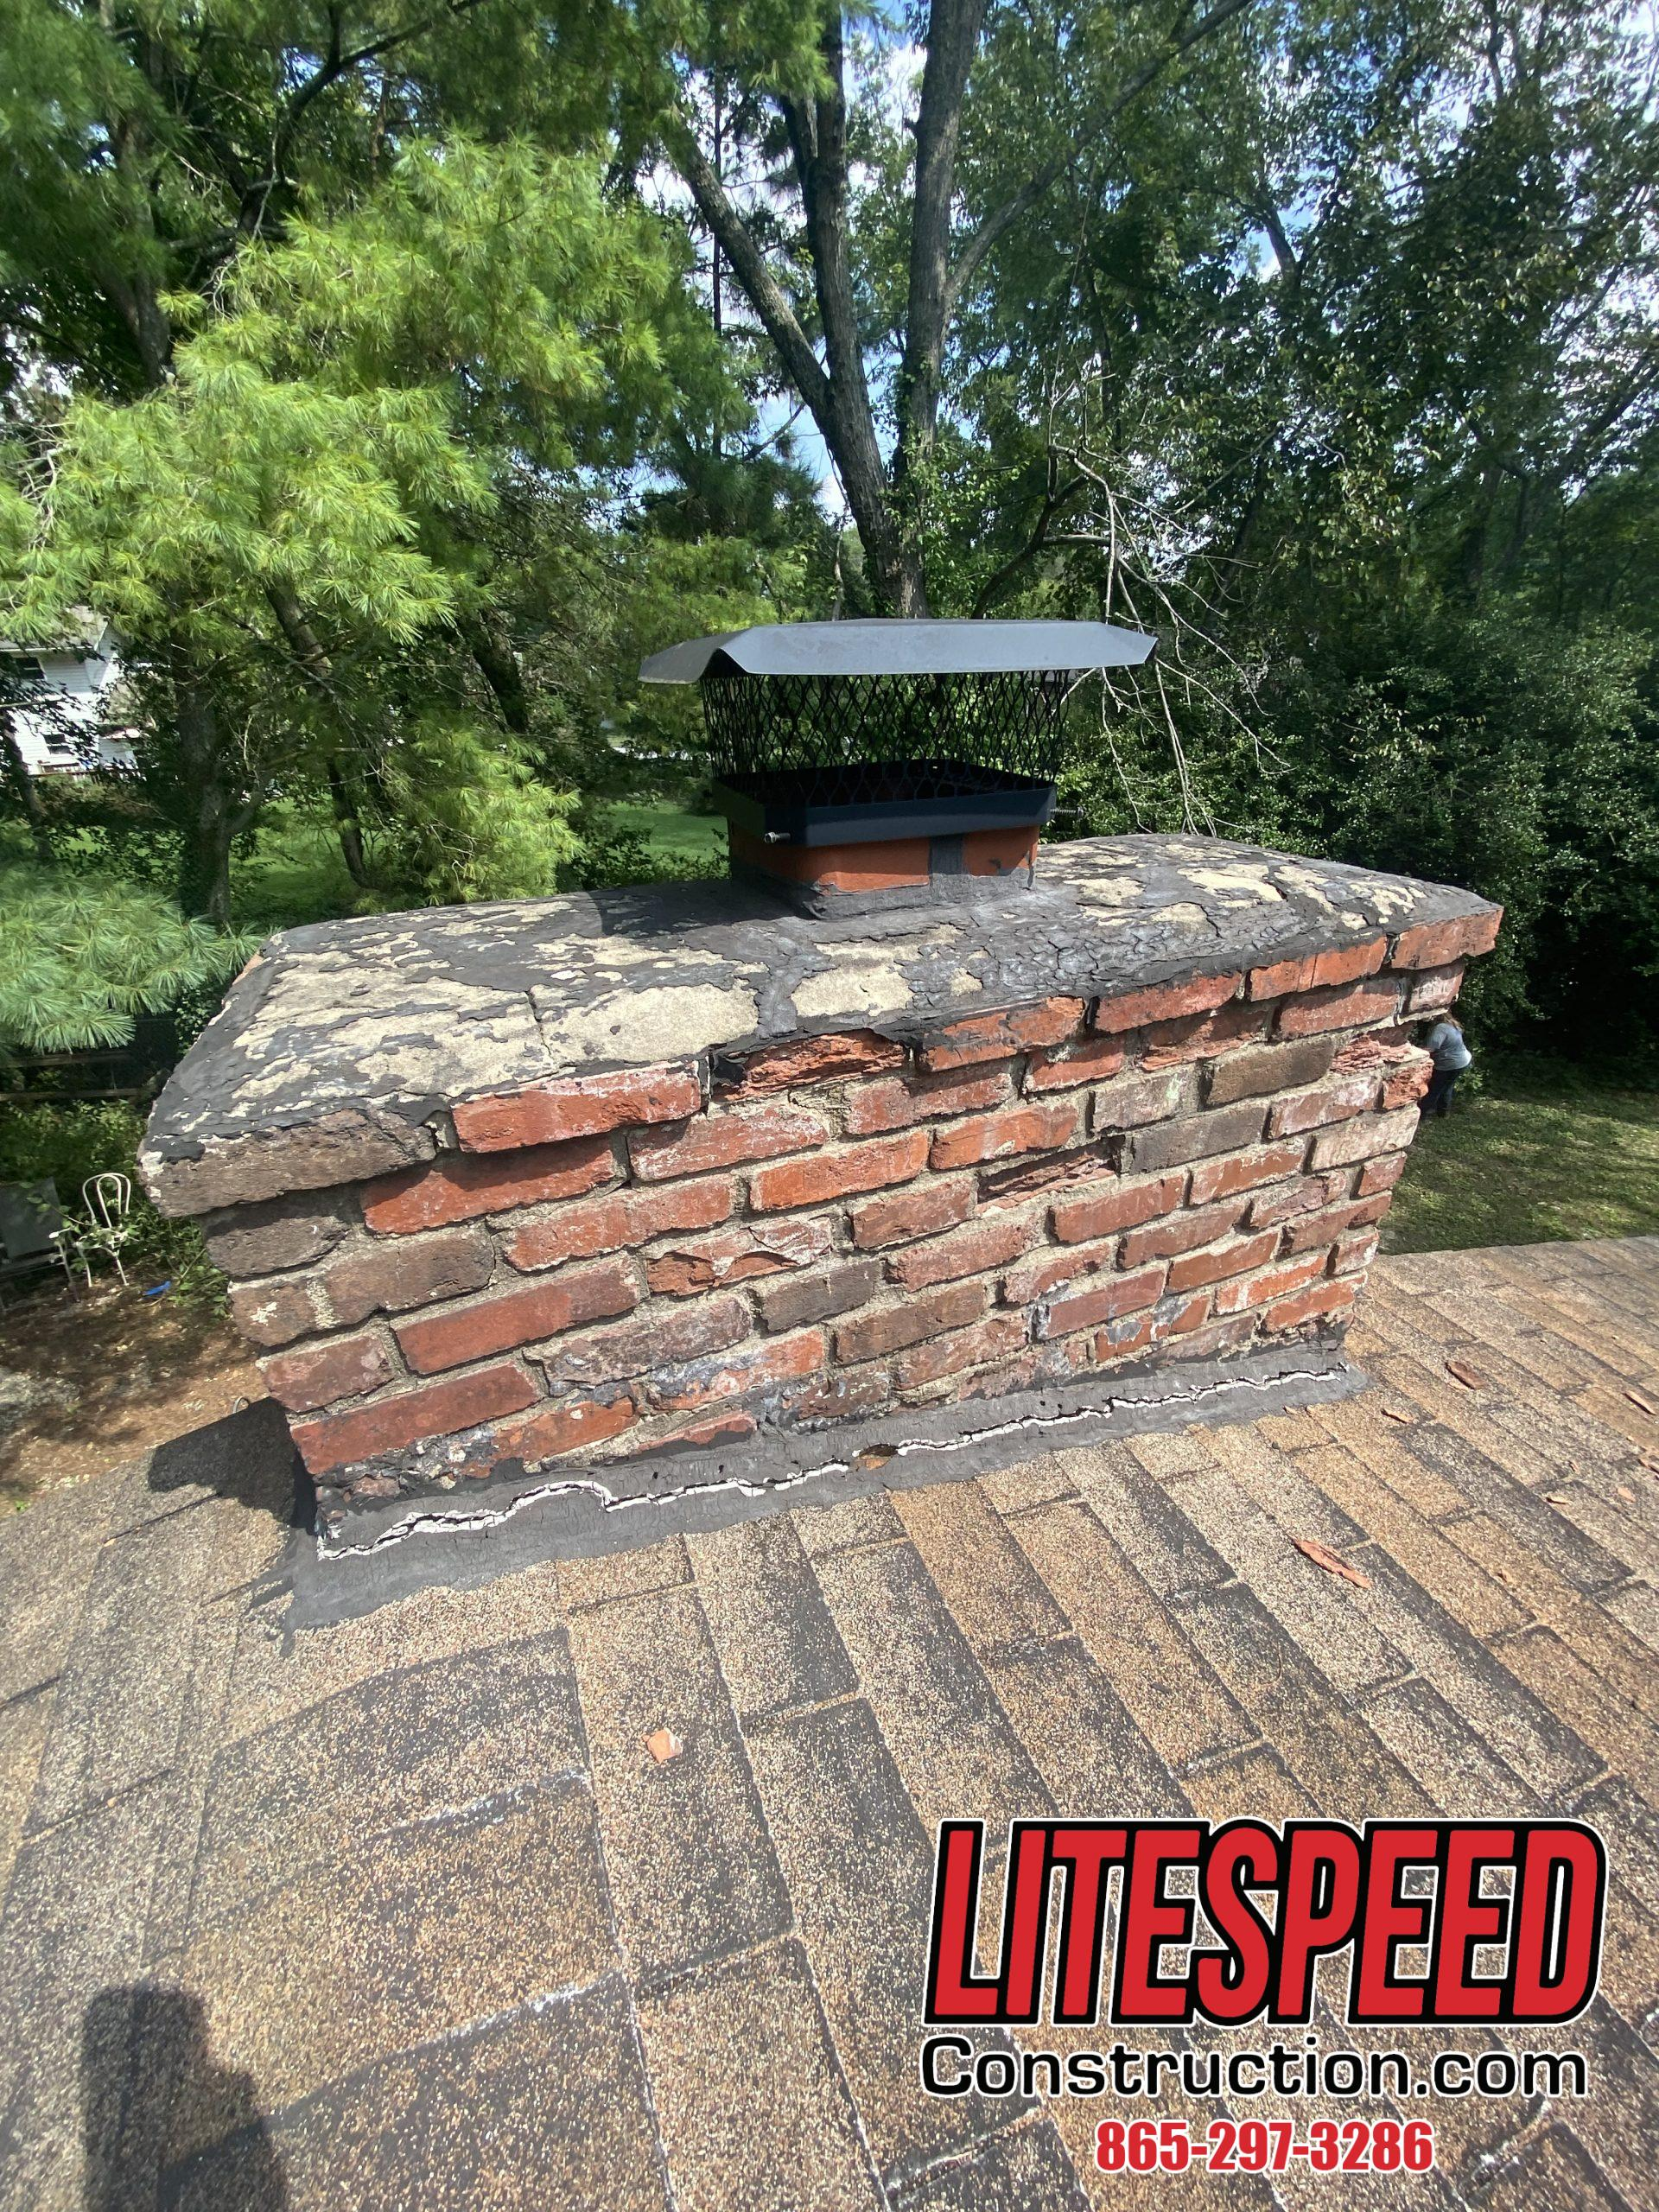 This is a picture of a brick chimney with bad flashing